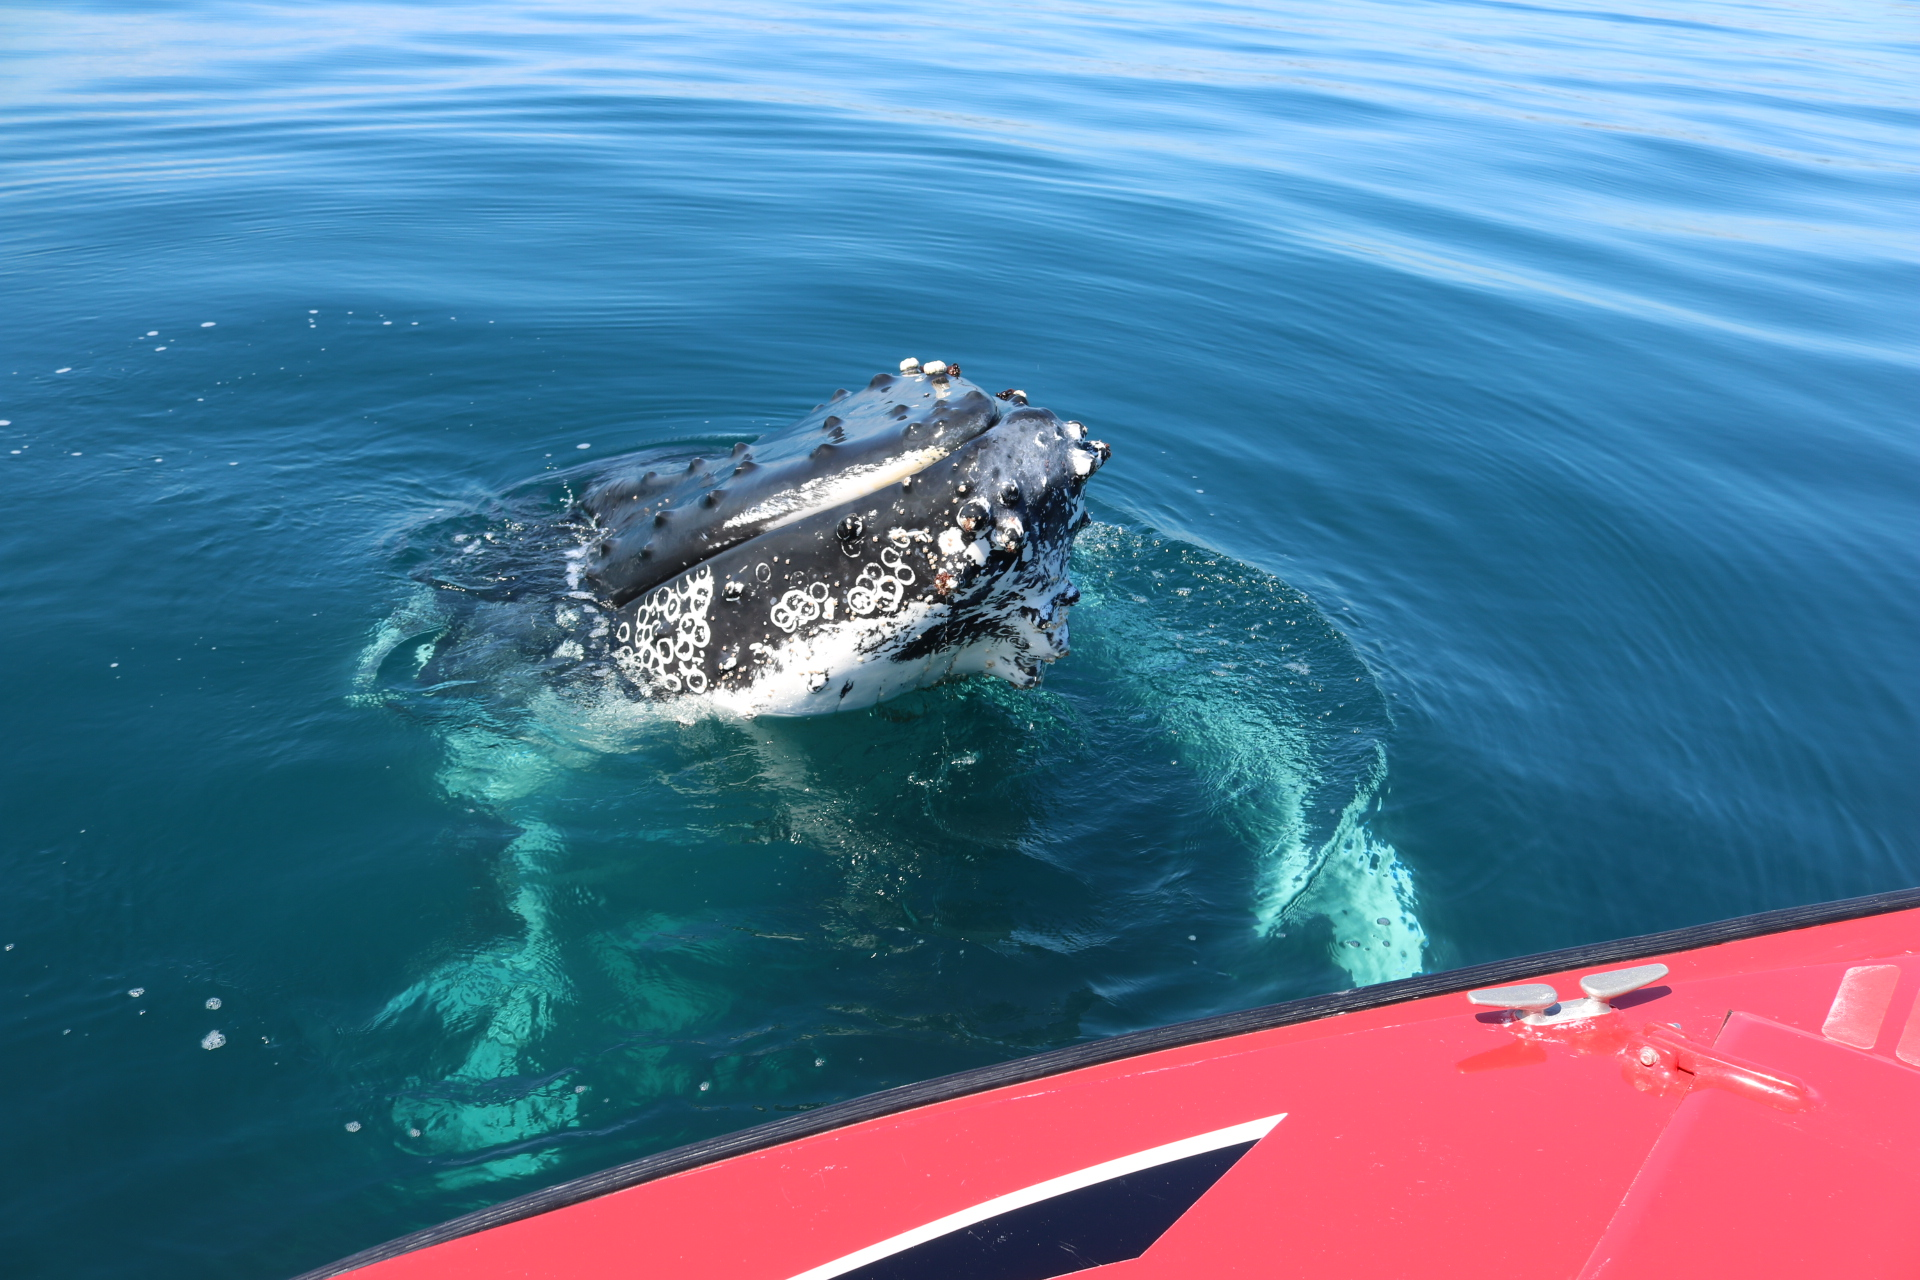 Humpbacks are an inquisitive whale